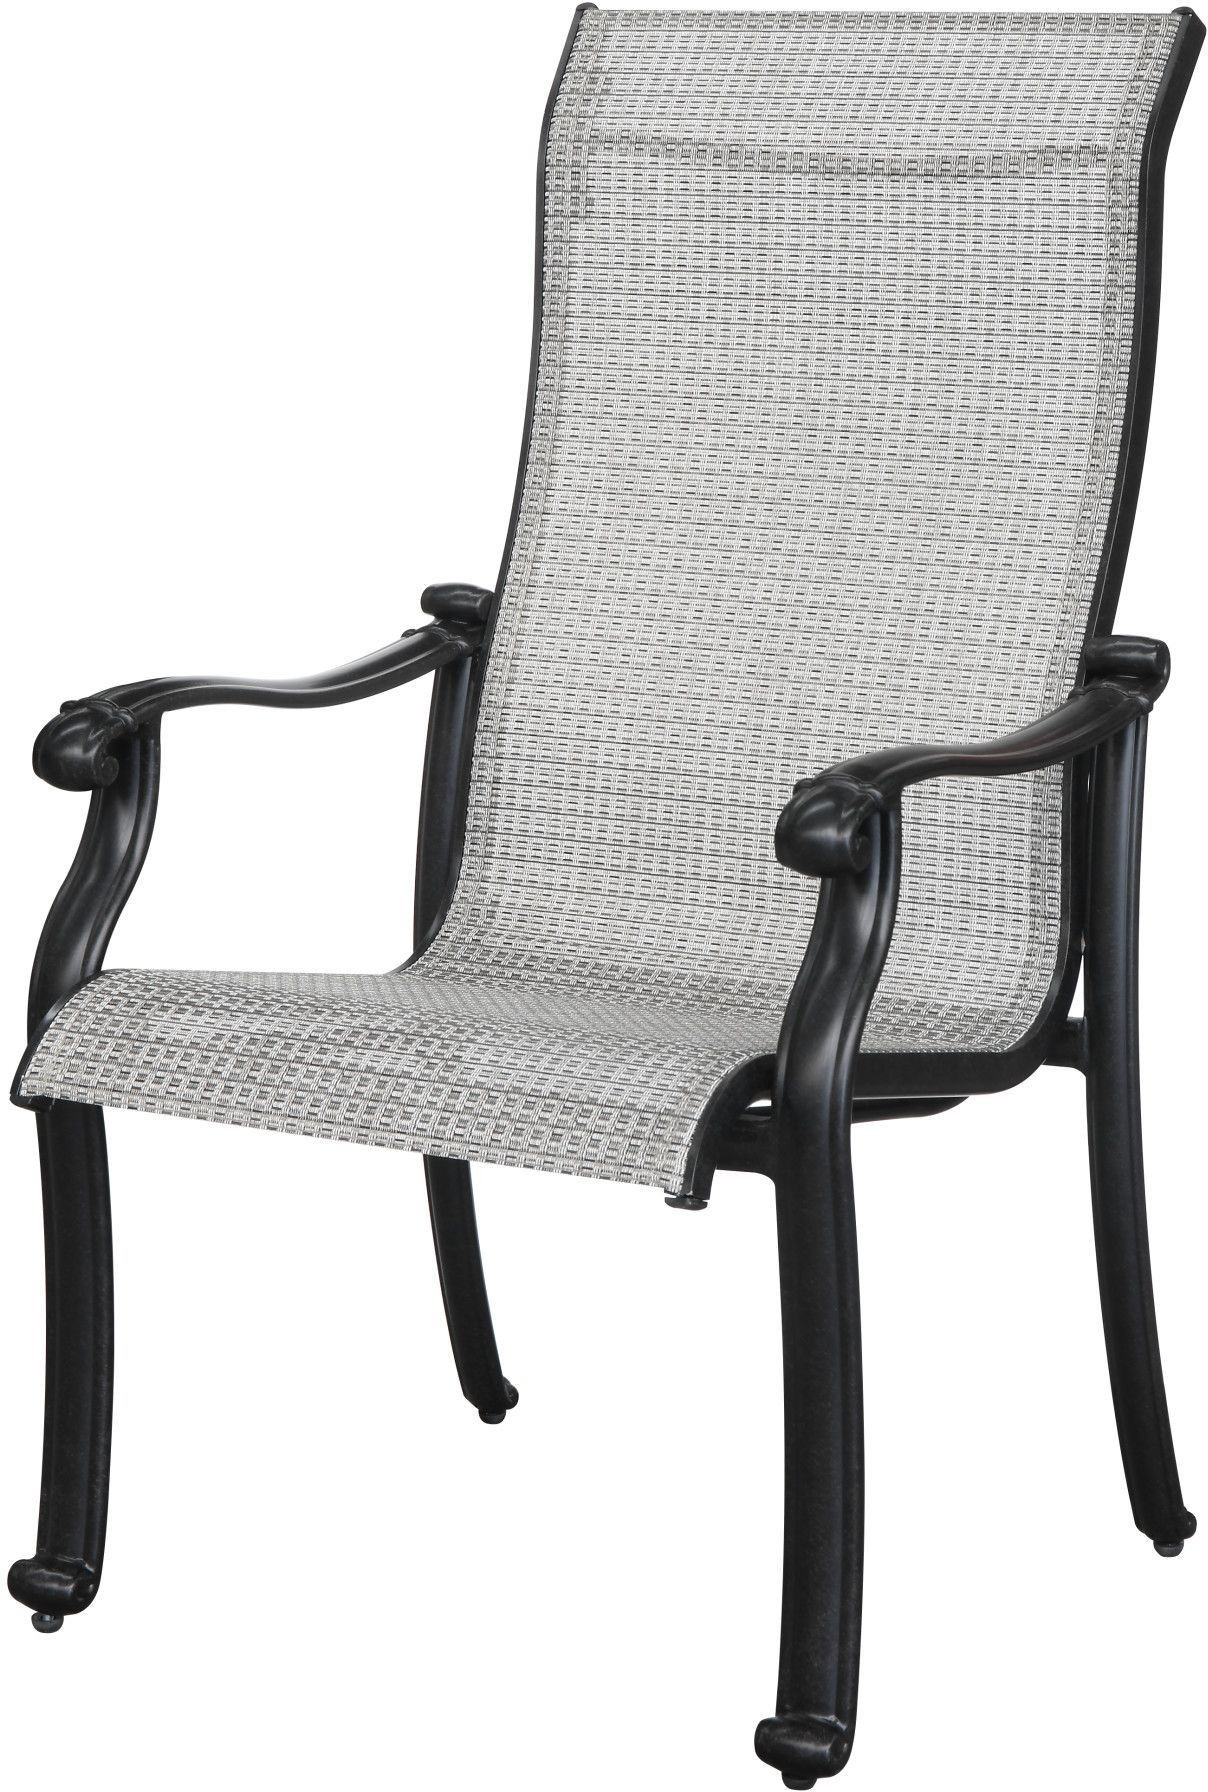 Versailles yx Outdoor Sling Chair Set of 2 from Emerald Home